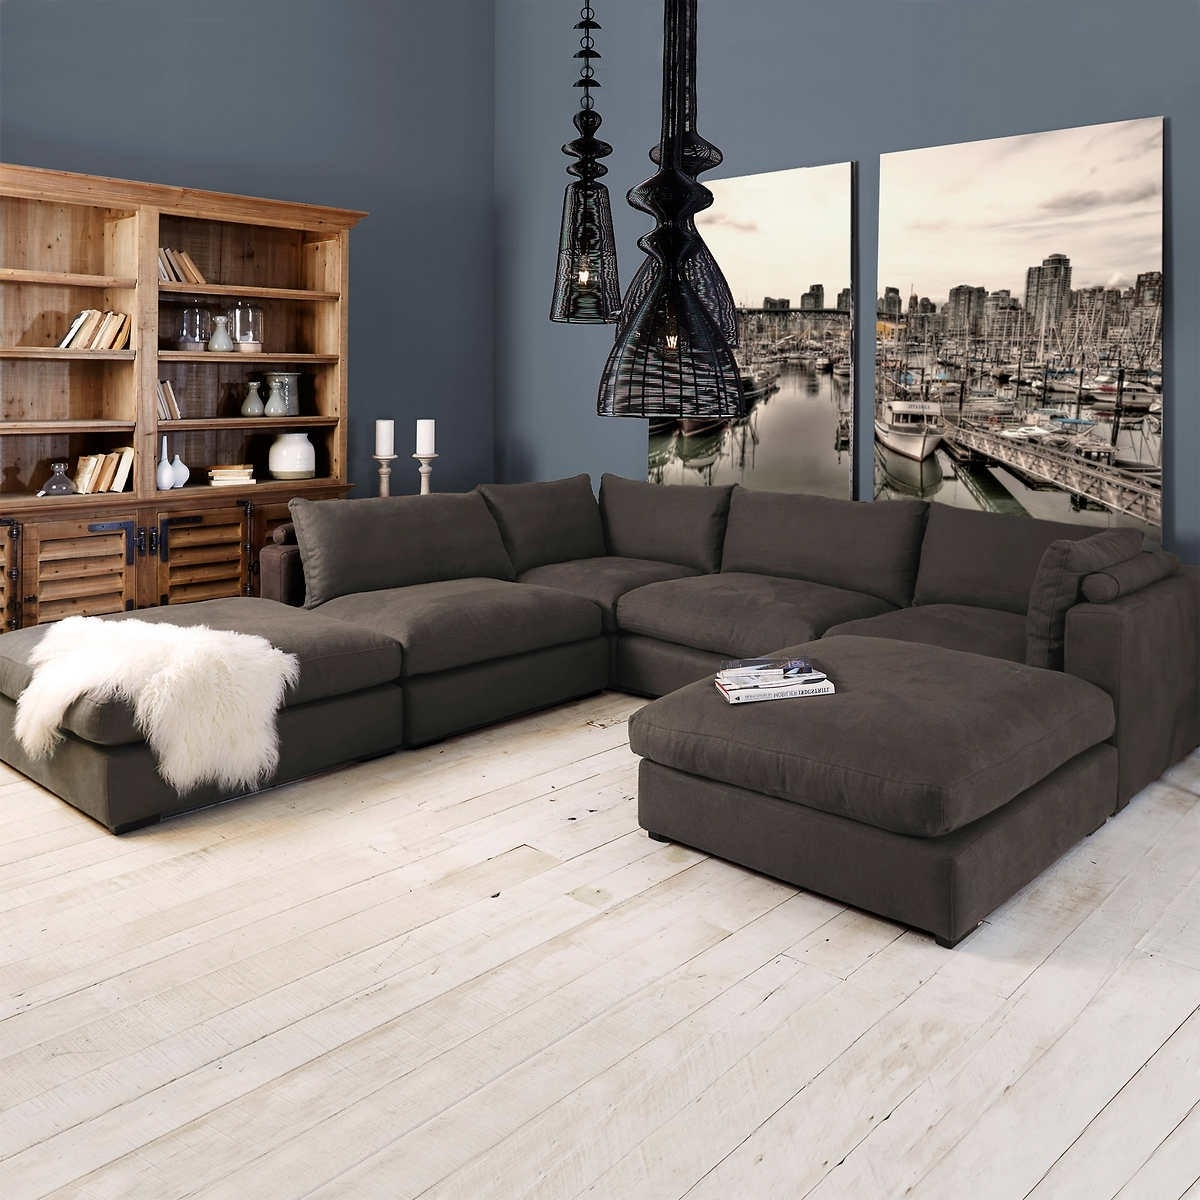 Trendy Best Of Individual Sectional Sofa Pieces – Buildsimplehome Regarding Individual Piece Sectional Sofas (View 17 of 20)